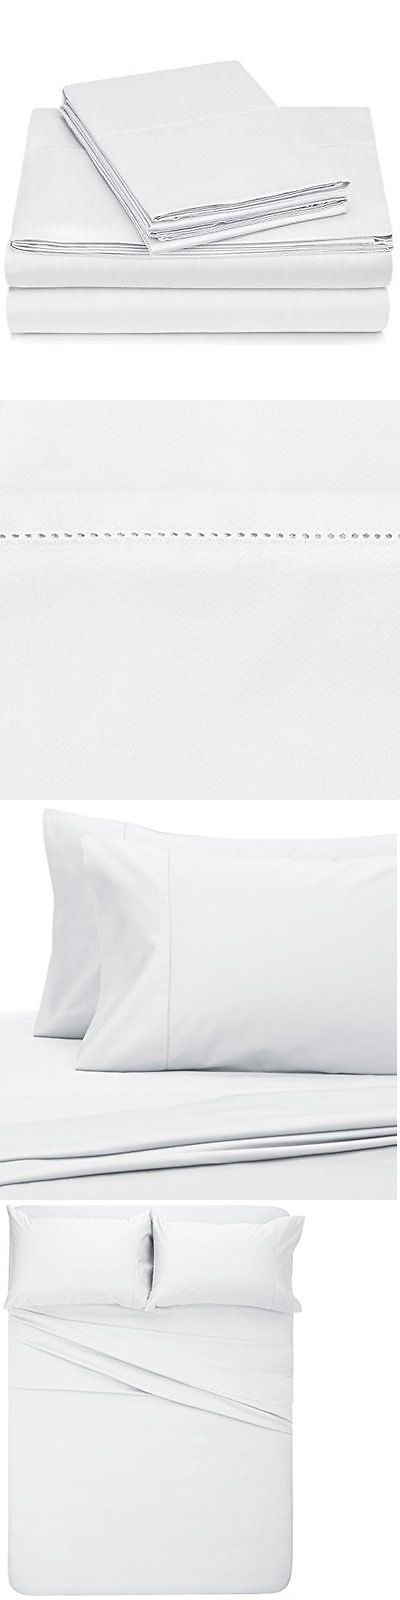 Sheets and Pillowcases 20460: Pinzon 400-Thread-Count Egyptian Cotton Sateen Hemstitch Sheet Set - Queen, New -> BUY IT NOW ONLY: $48.09 on eBay!